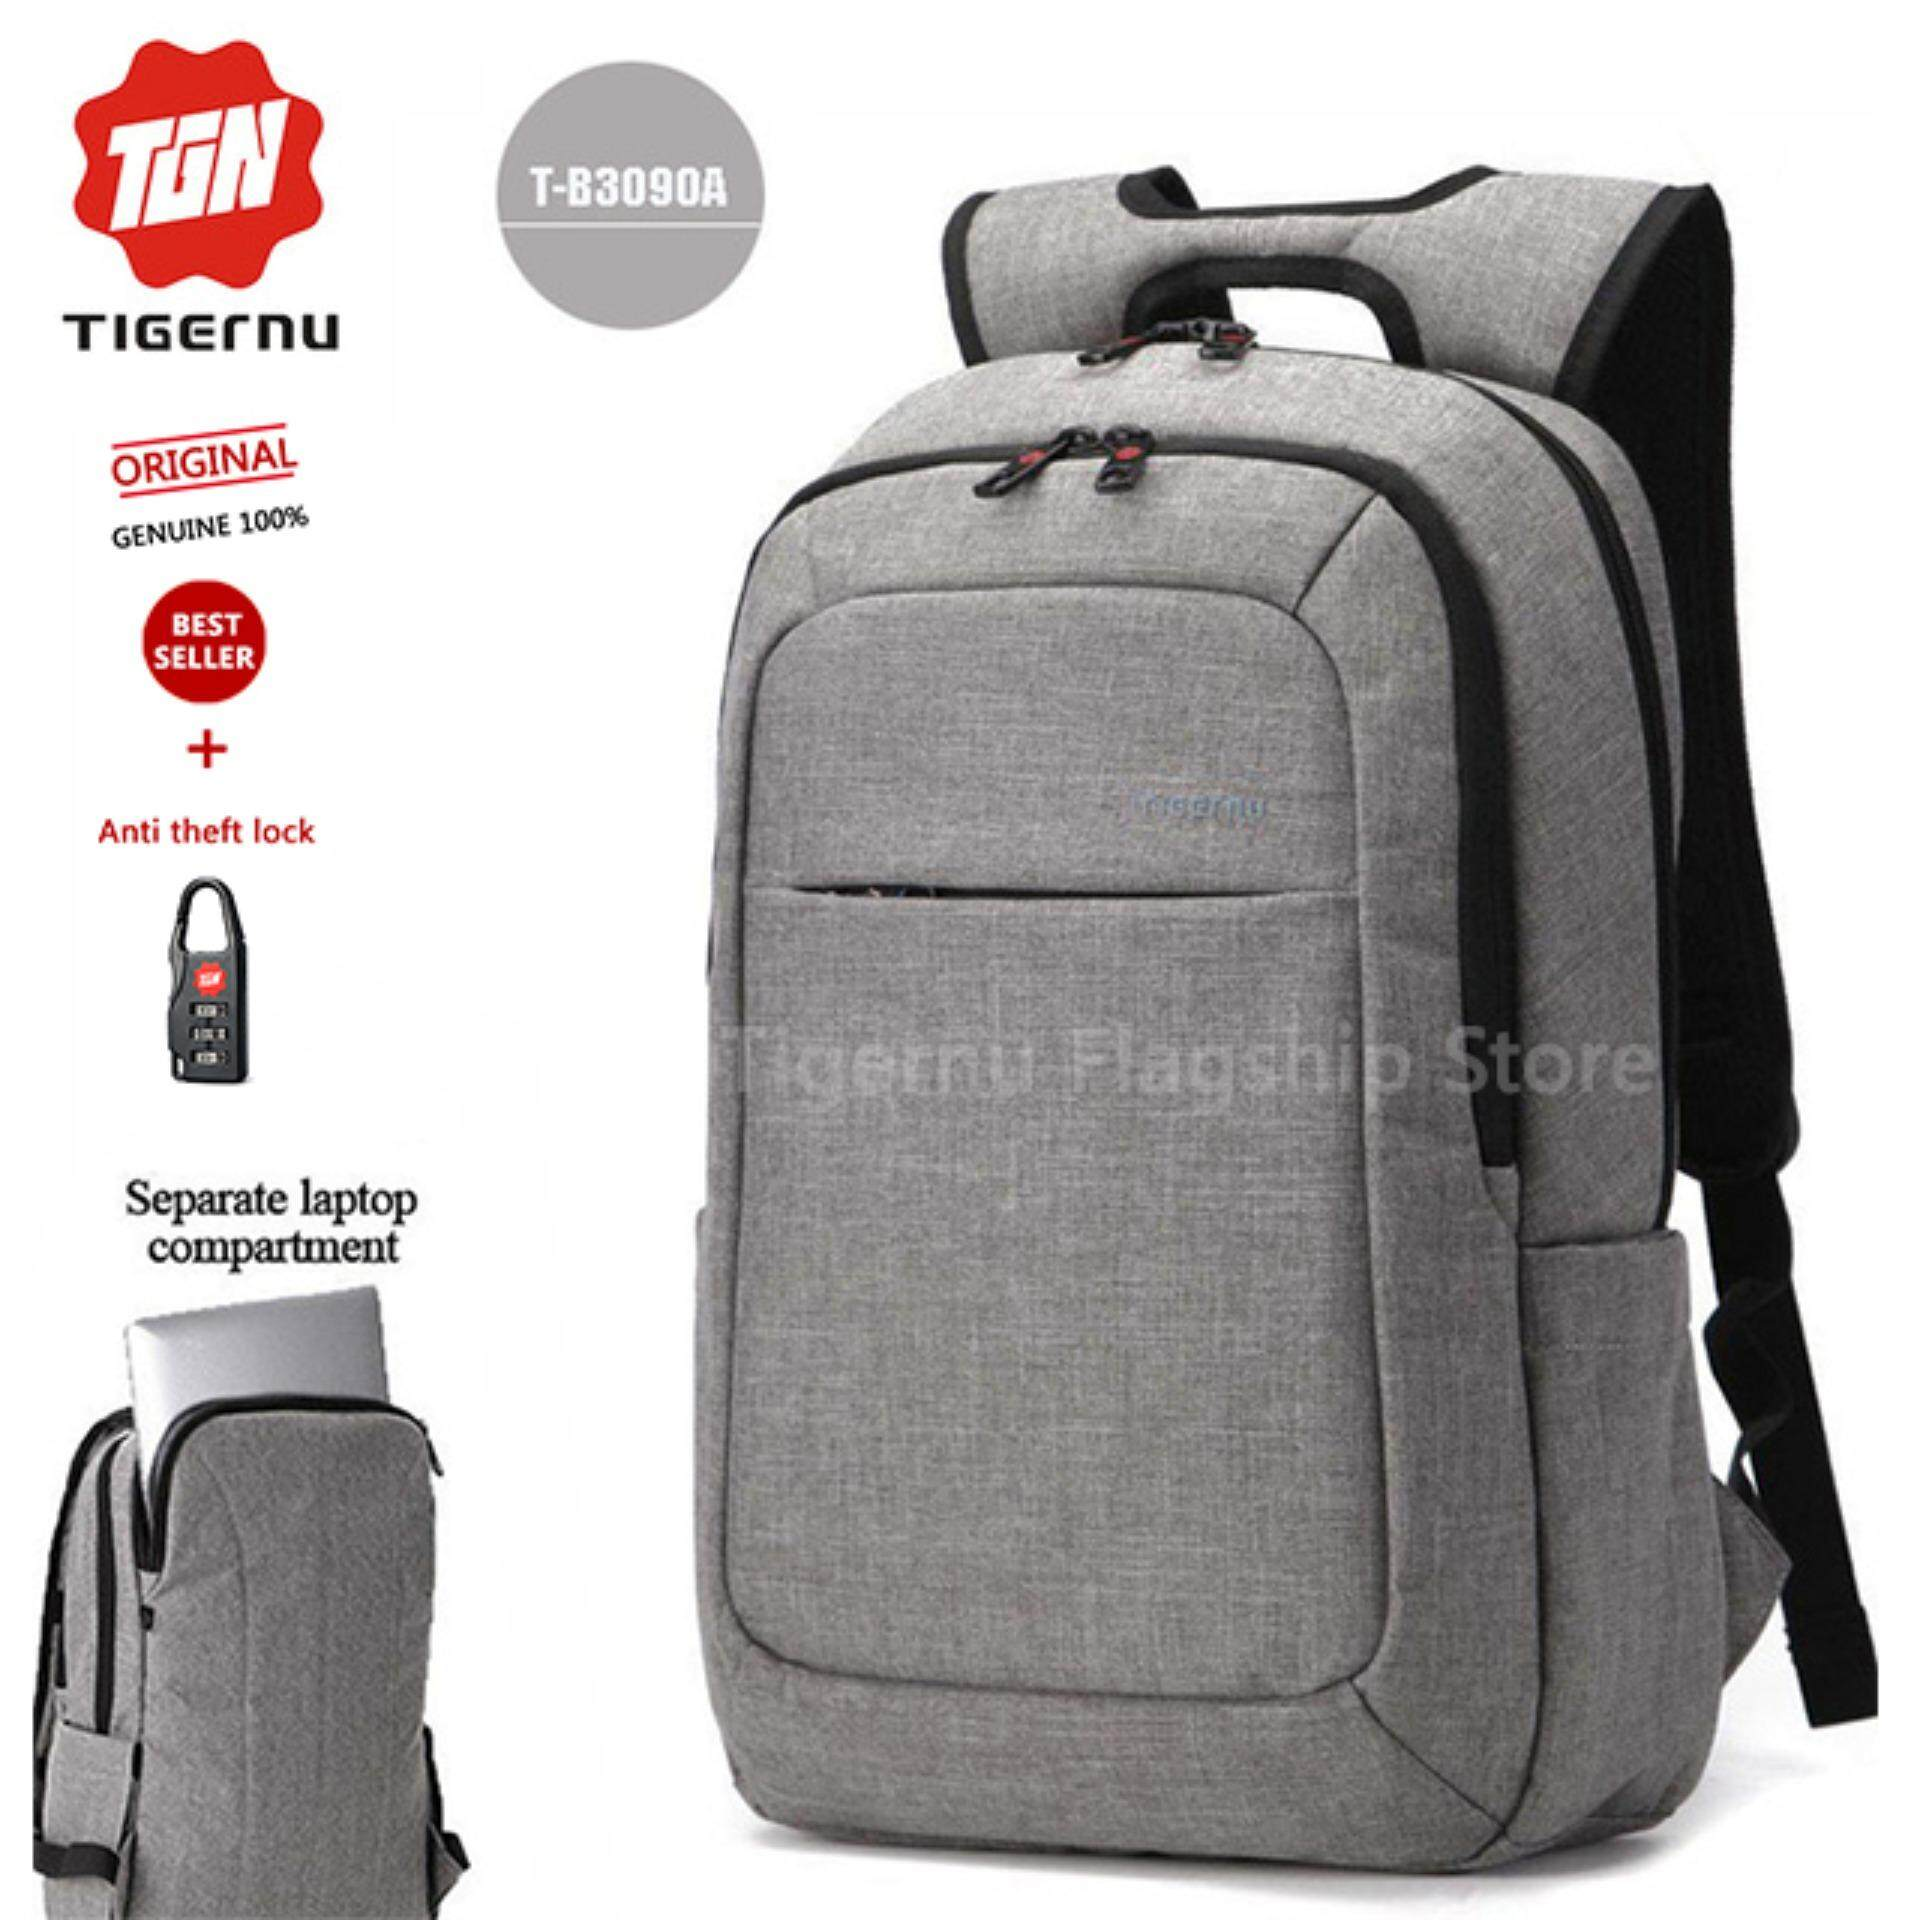 2fcda4bb231 Tigernu 16 inches Causal Daily Business Suiting Material Laptop Backpack  Fit for 10.1-15.6